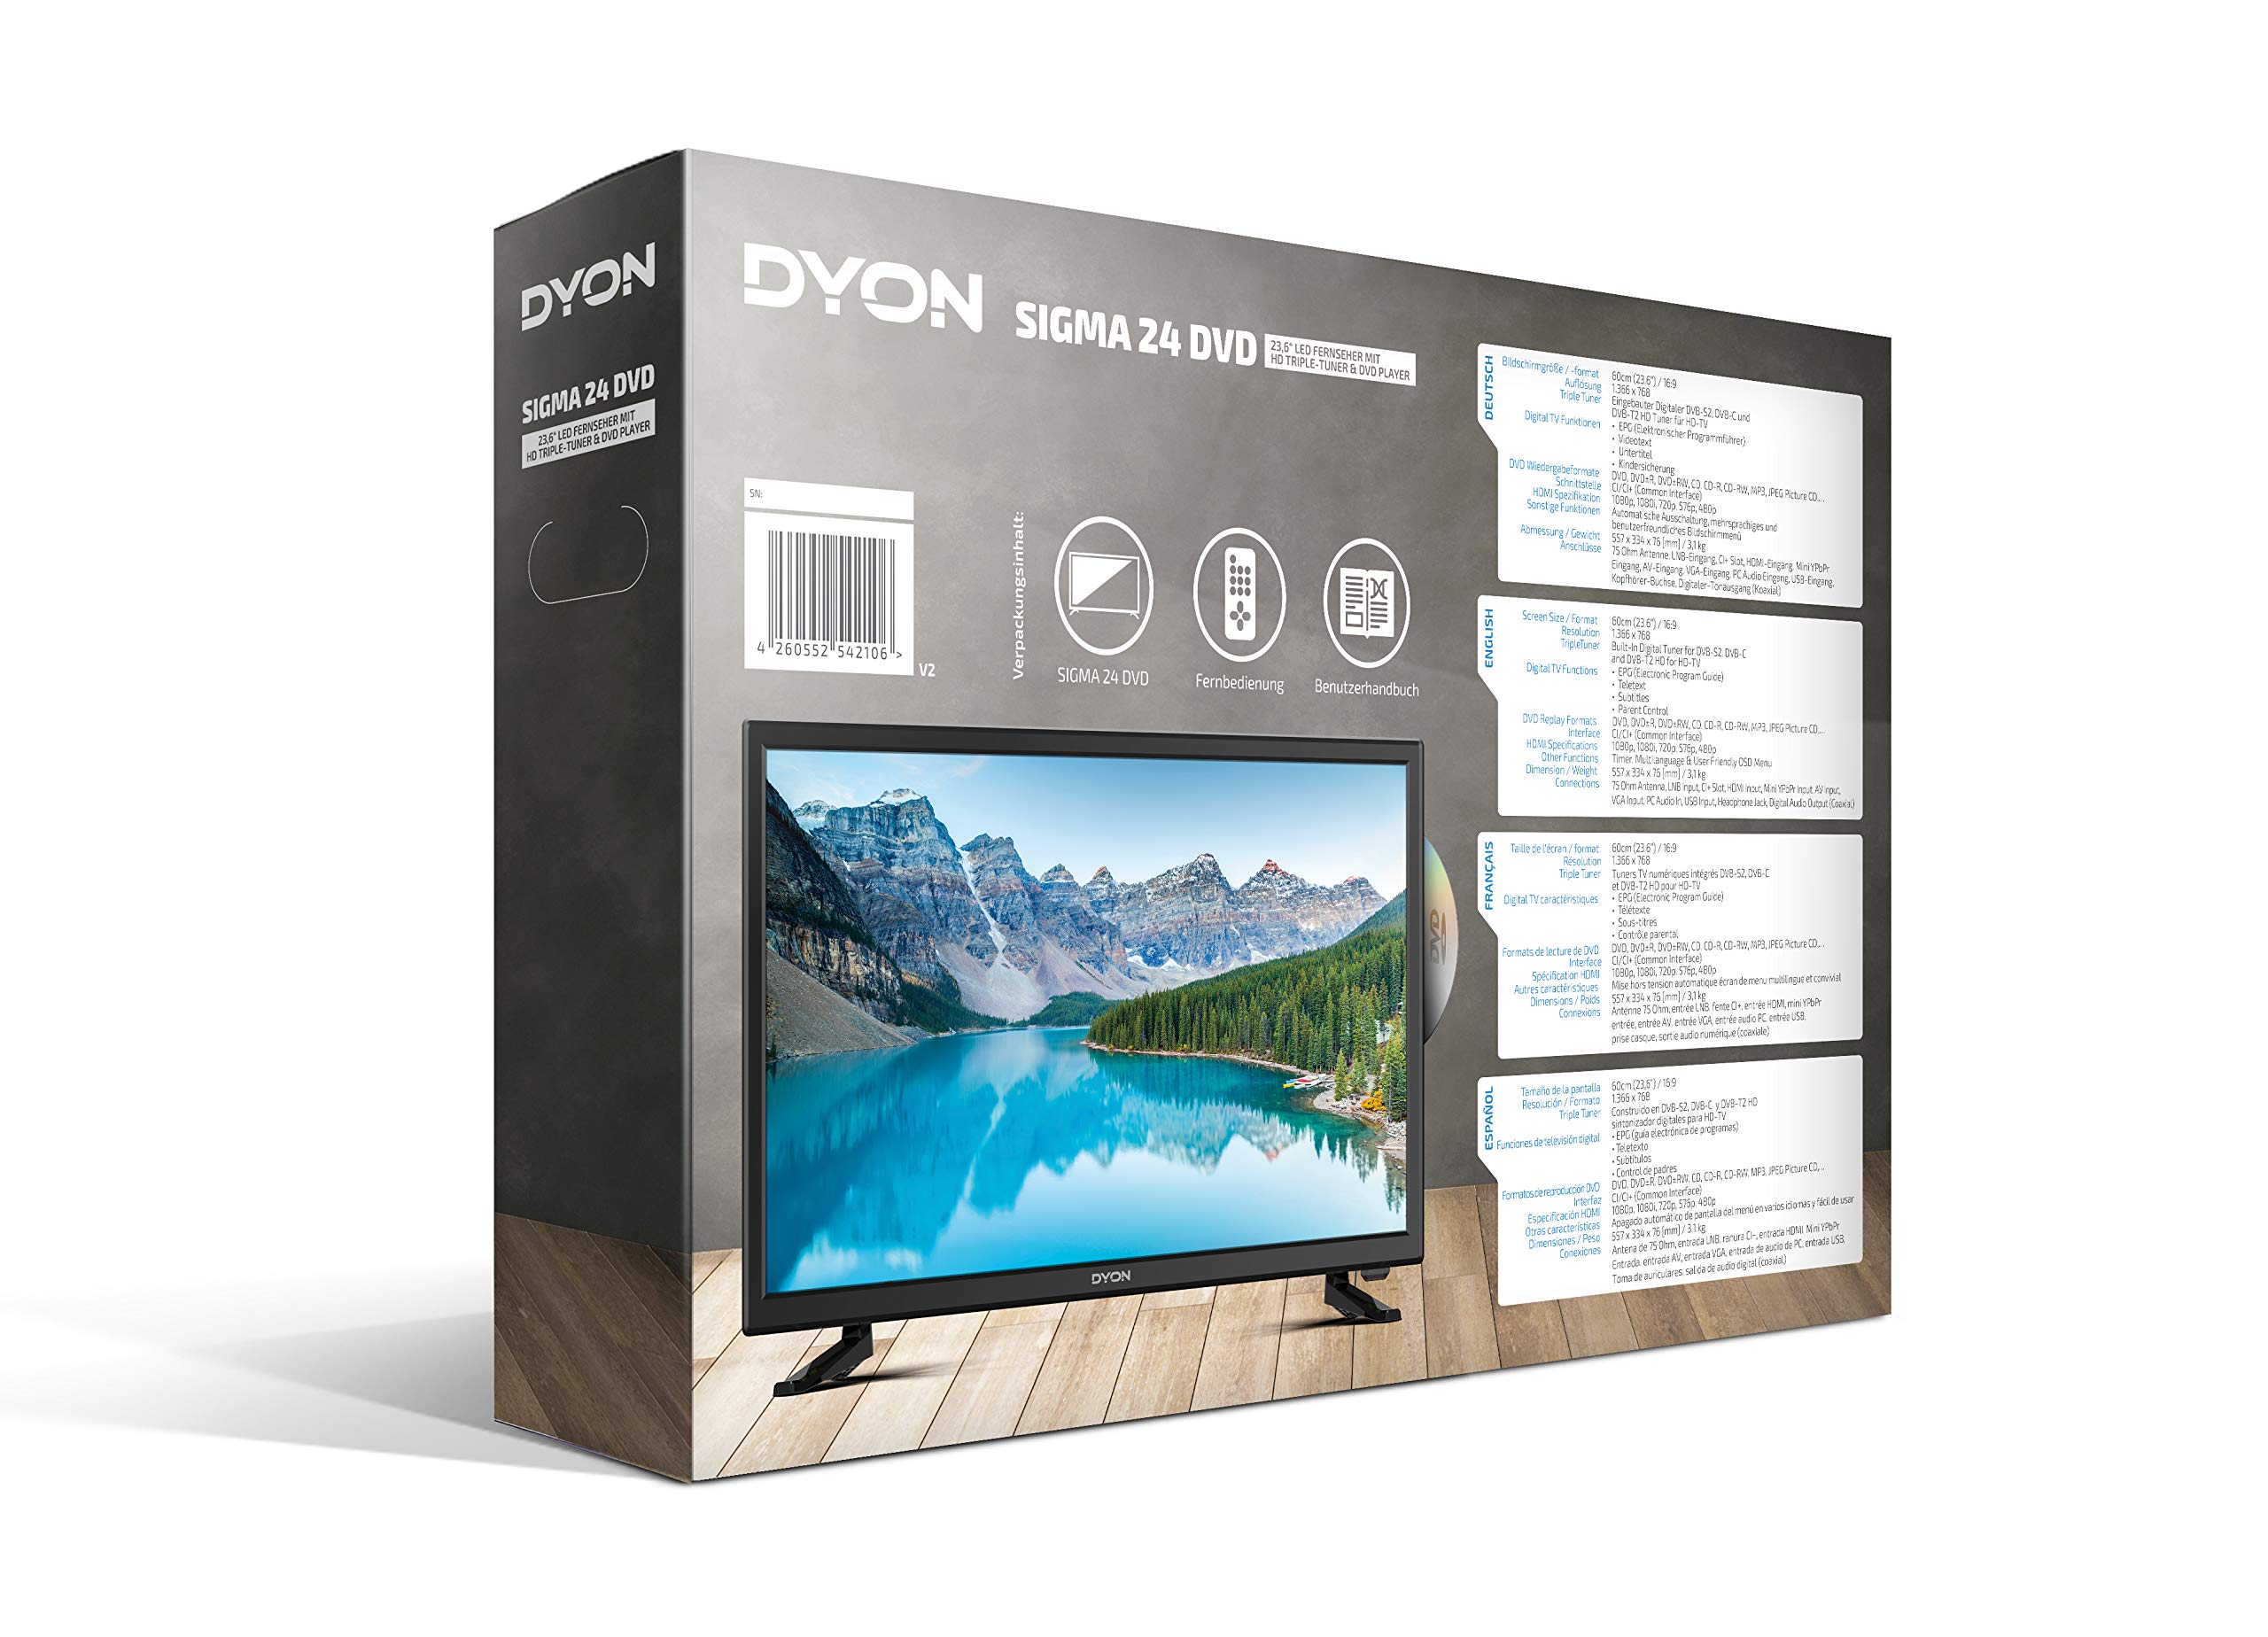 DYON Sigma 24 DVD LED-TV 60cm 23.6 Zoll EEK A+ (A++: Amazon.es: Electrónica